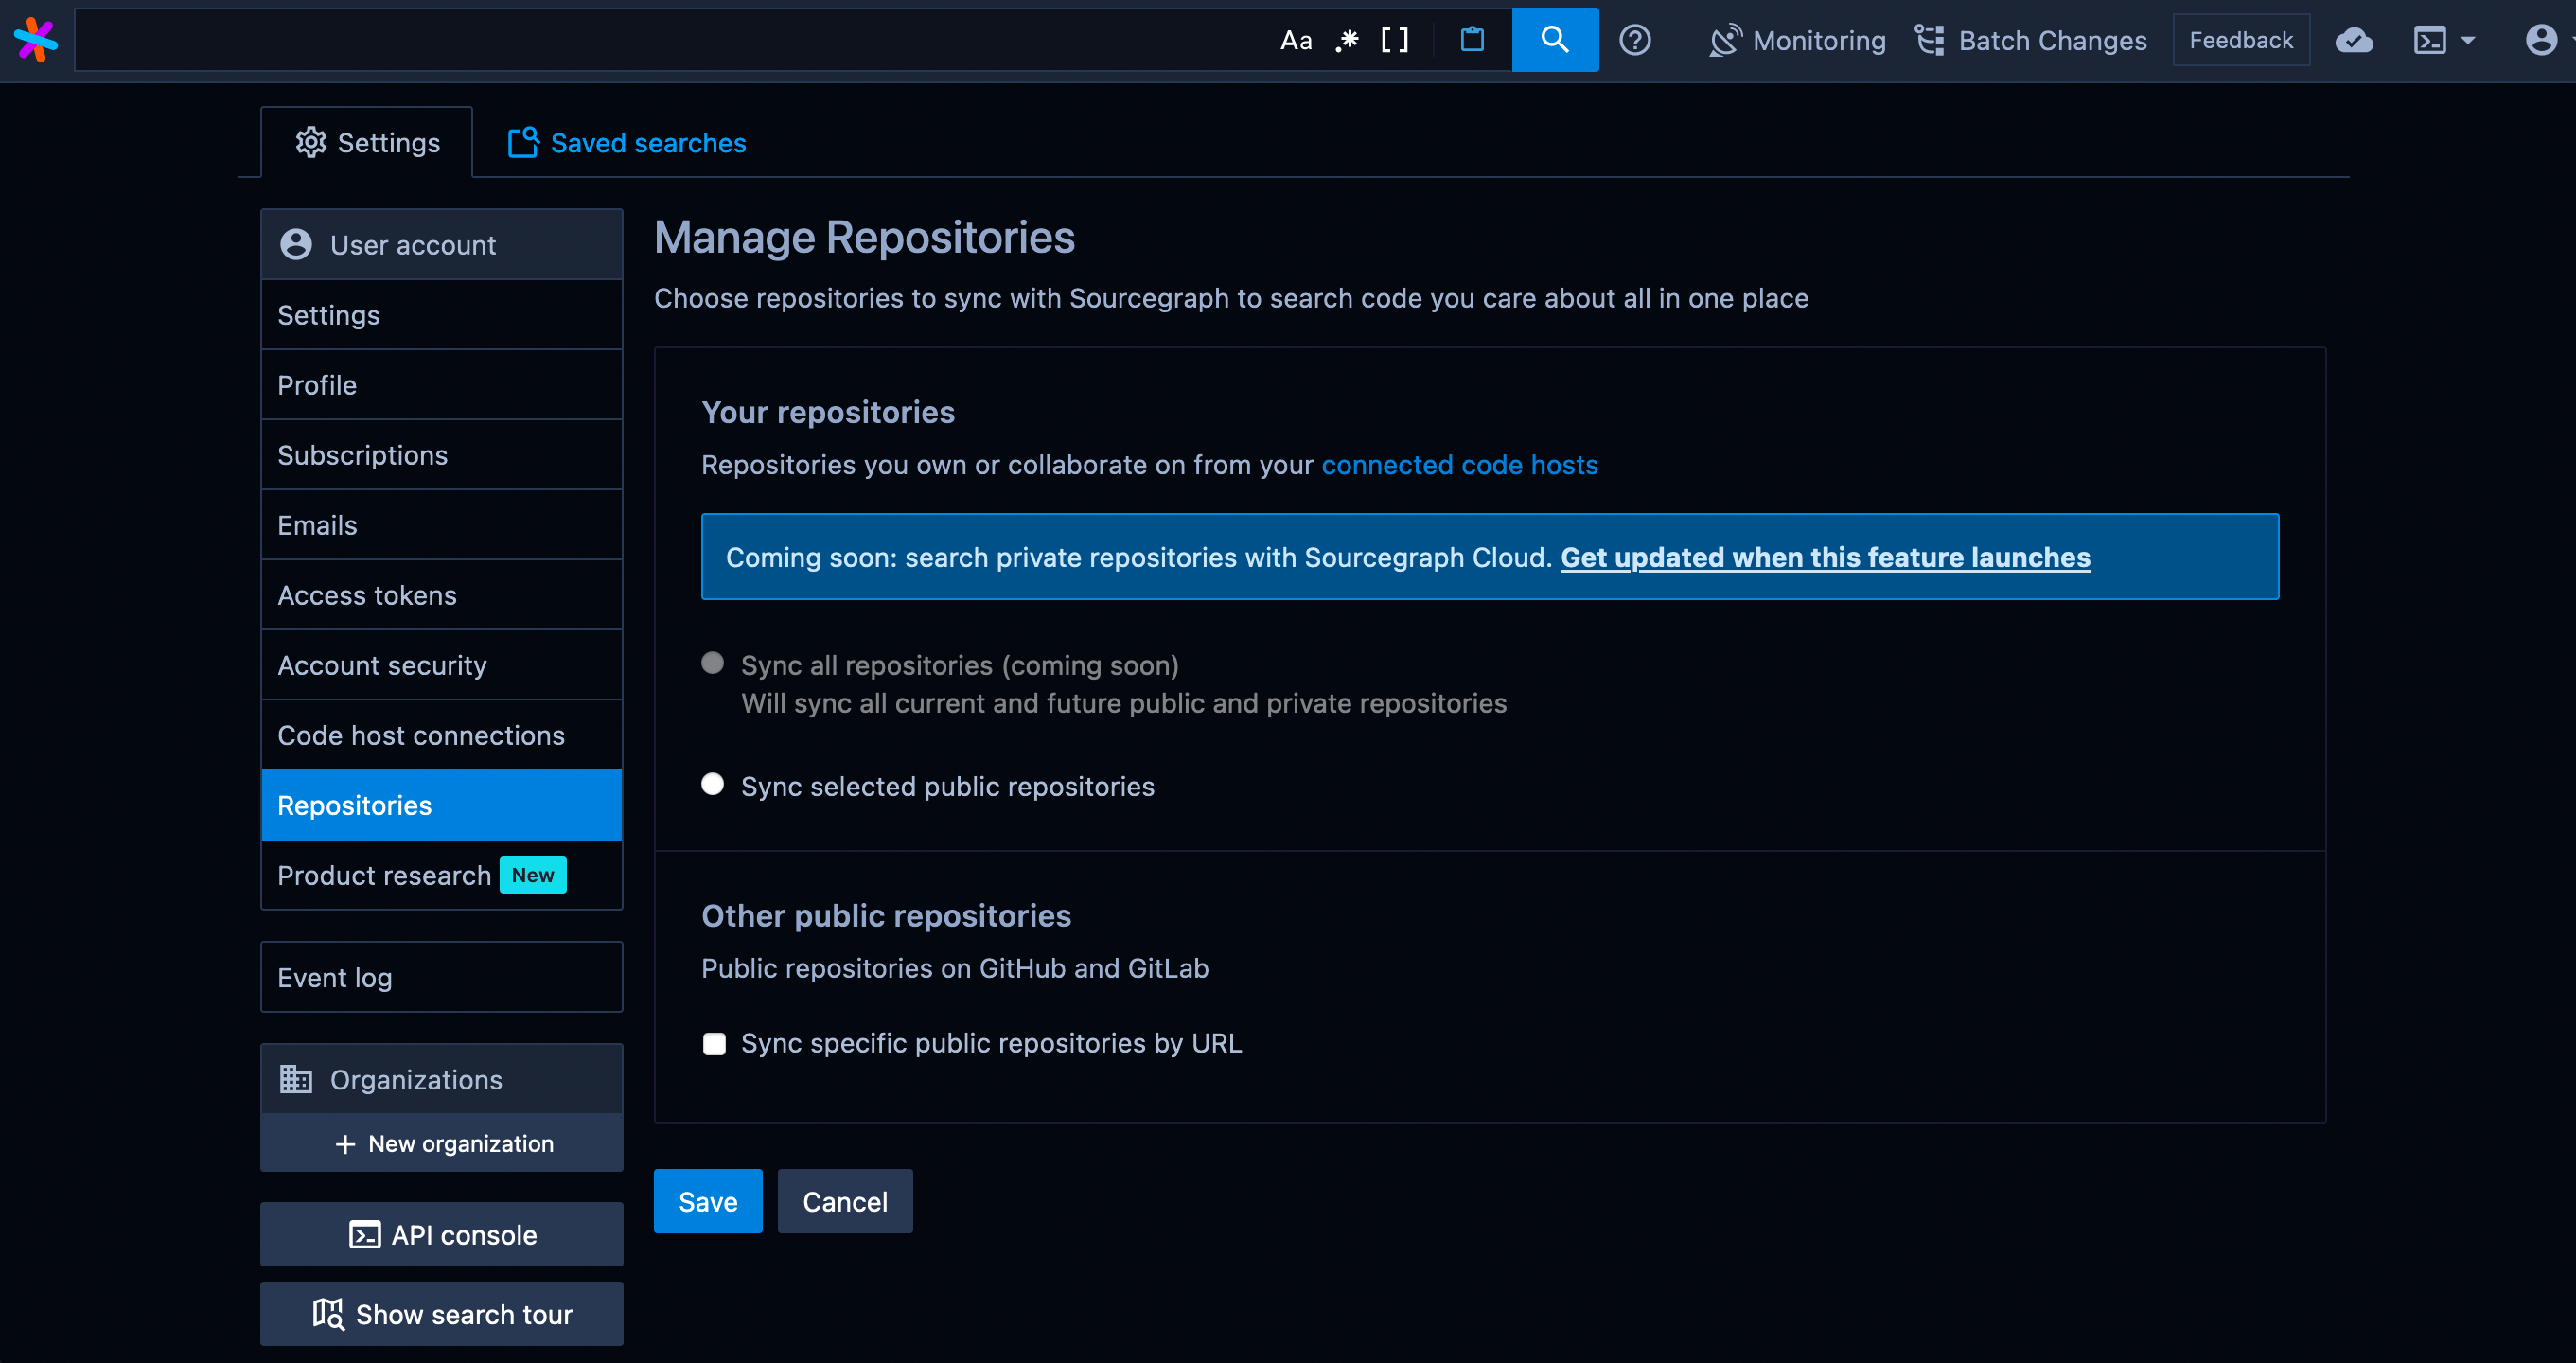 Sourcegraph manage repositories page